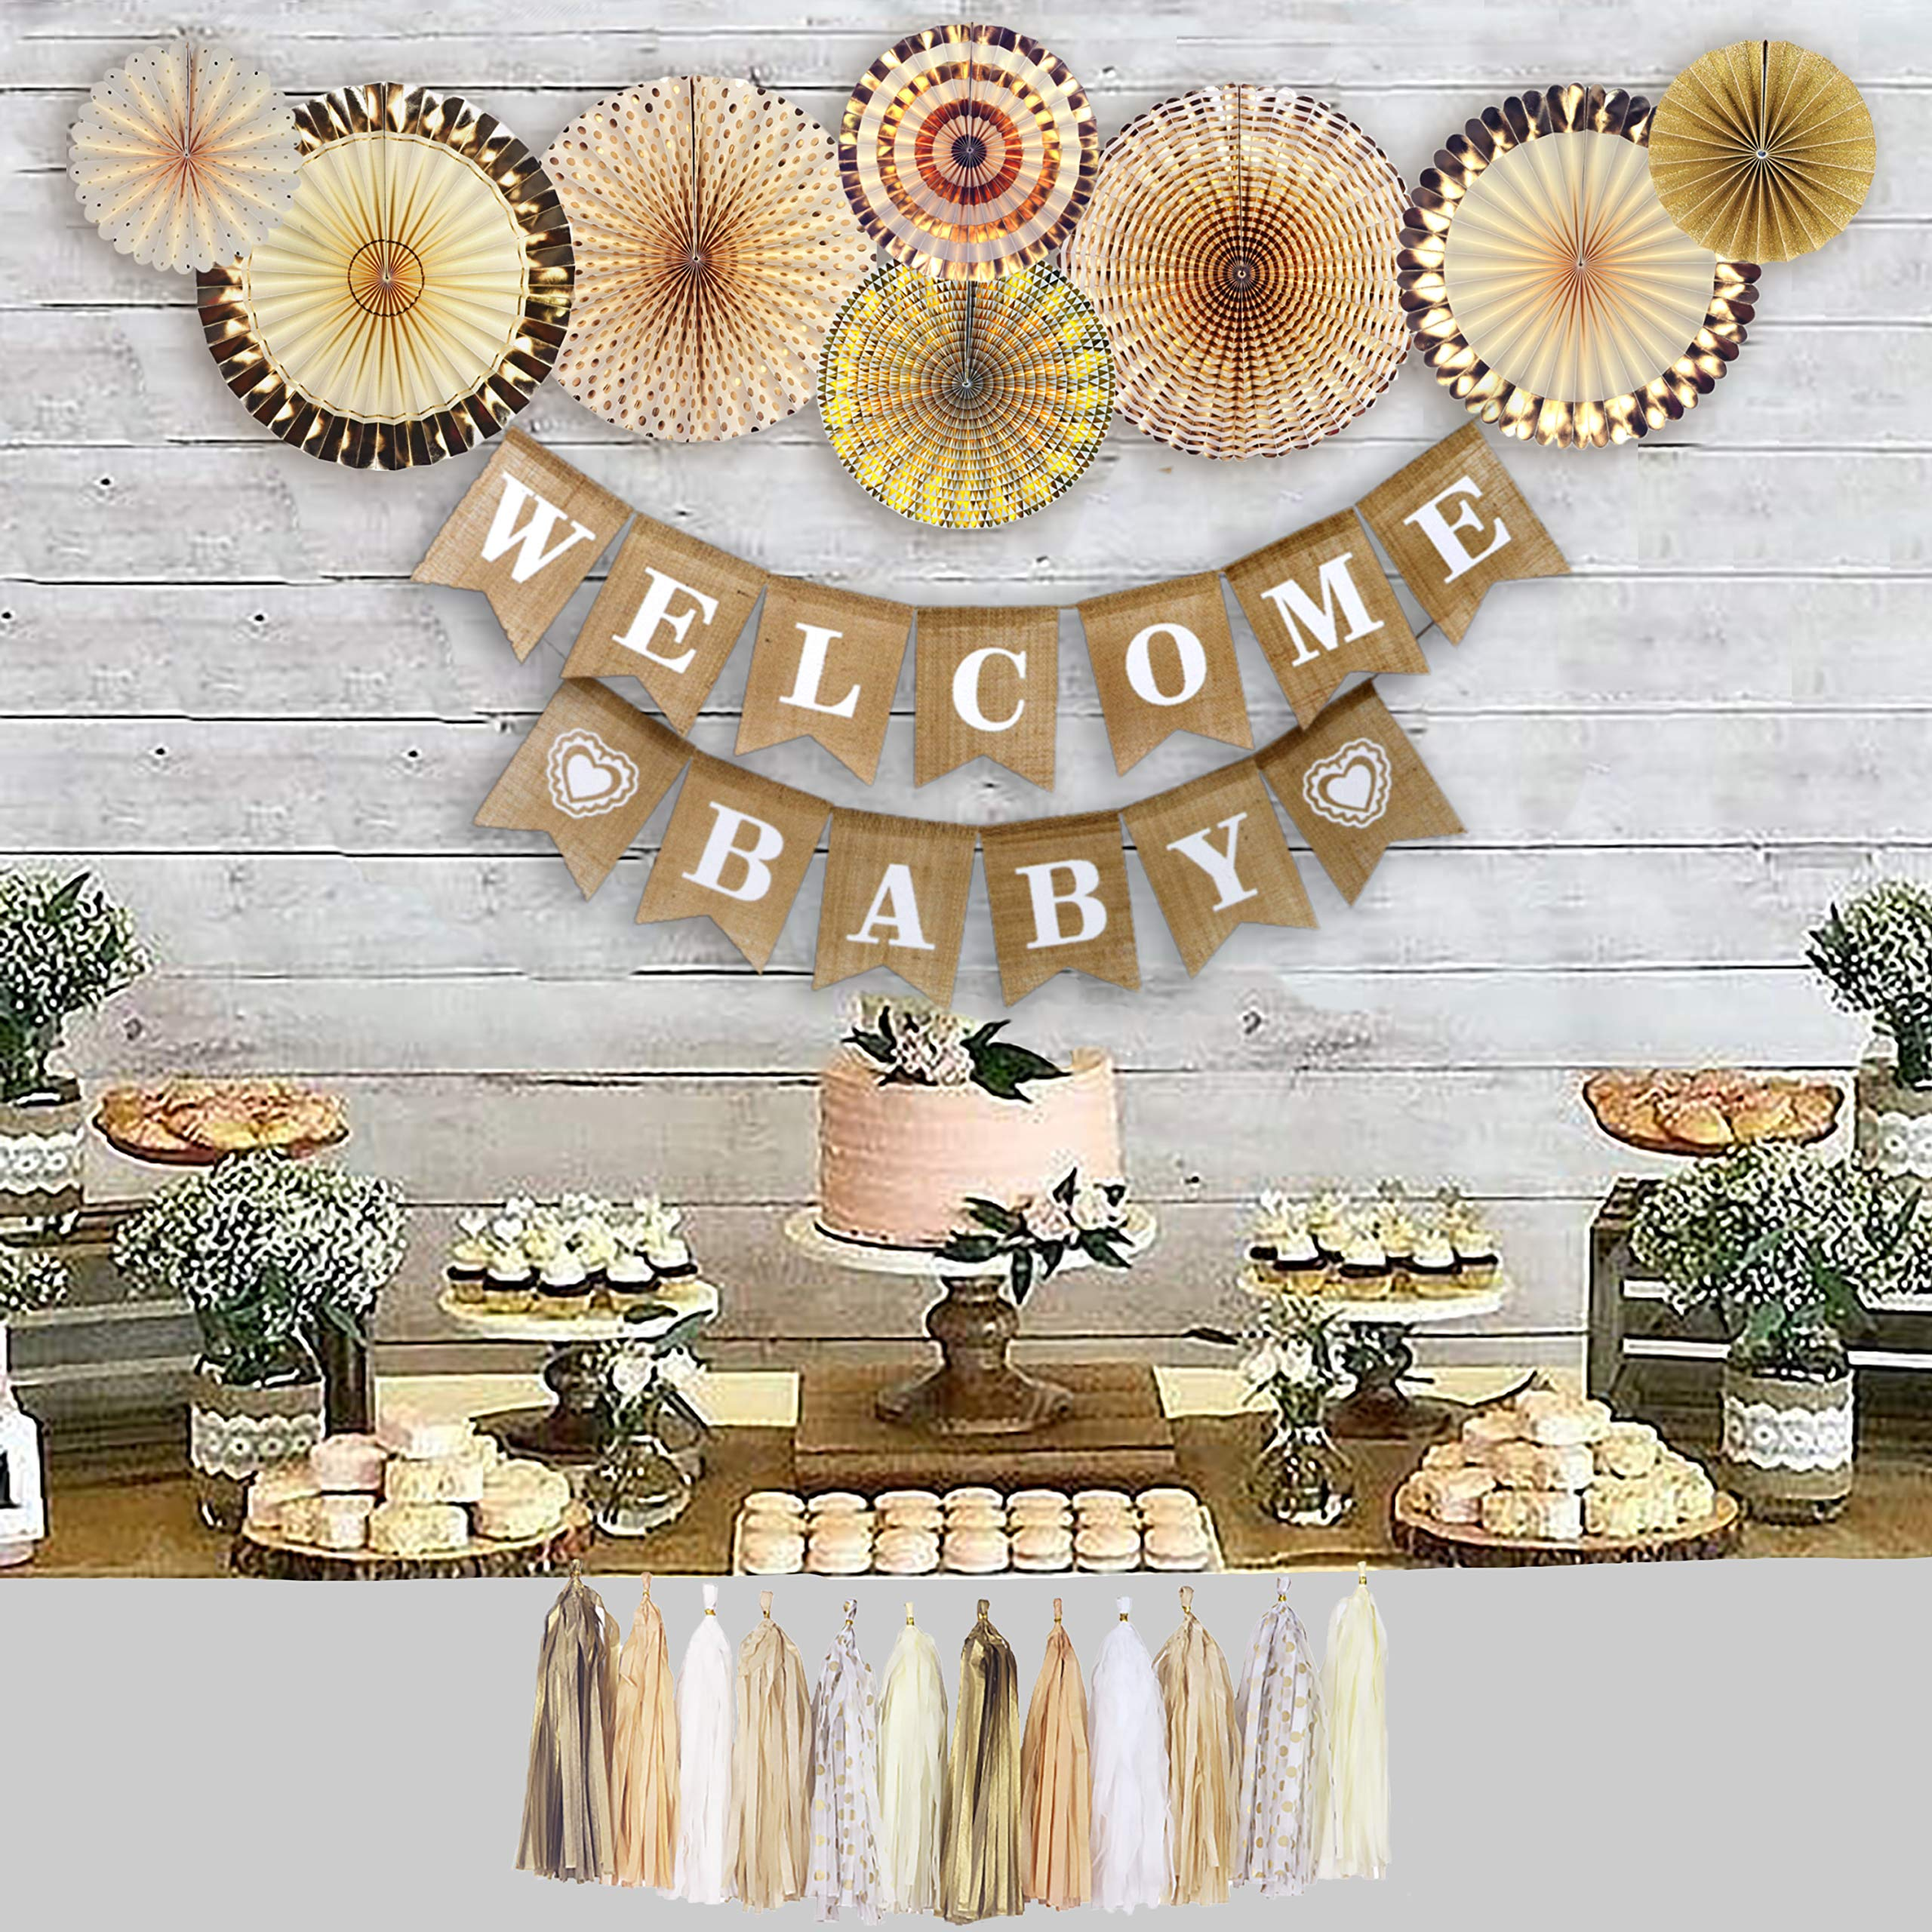 YARA Neutral Baby Shower Decorations for Boy or Girl Kit, Rustic Welcome Baby Banner in Burlap, Tassels, Gold and White Gender Reveal Baby Shower Decor Kit, Paper Fans, Party Supplies by Yara